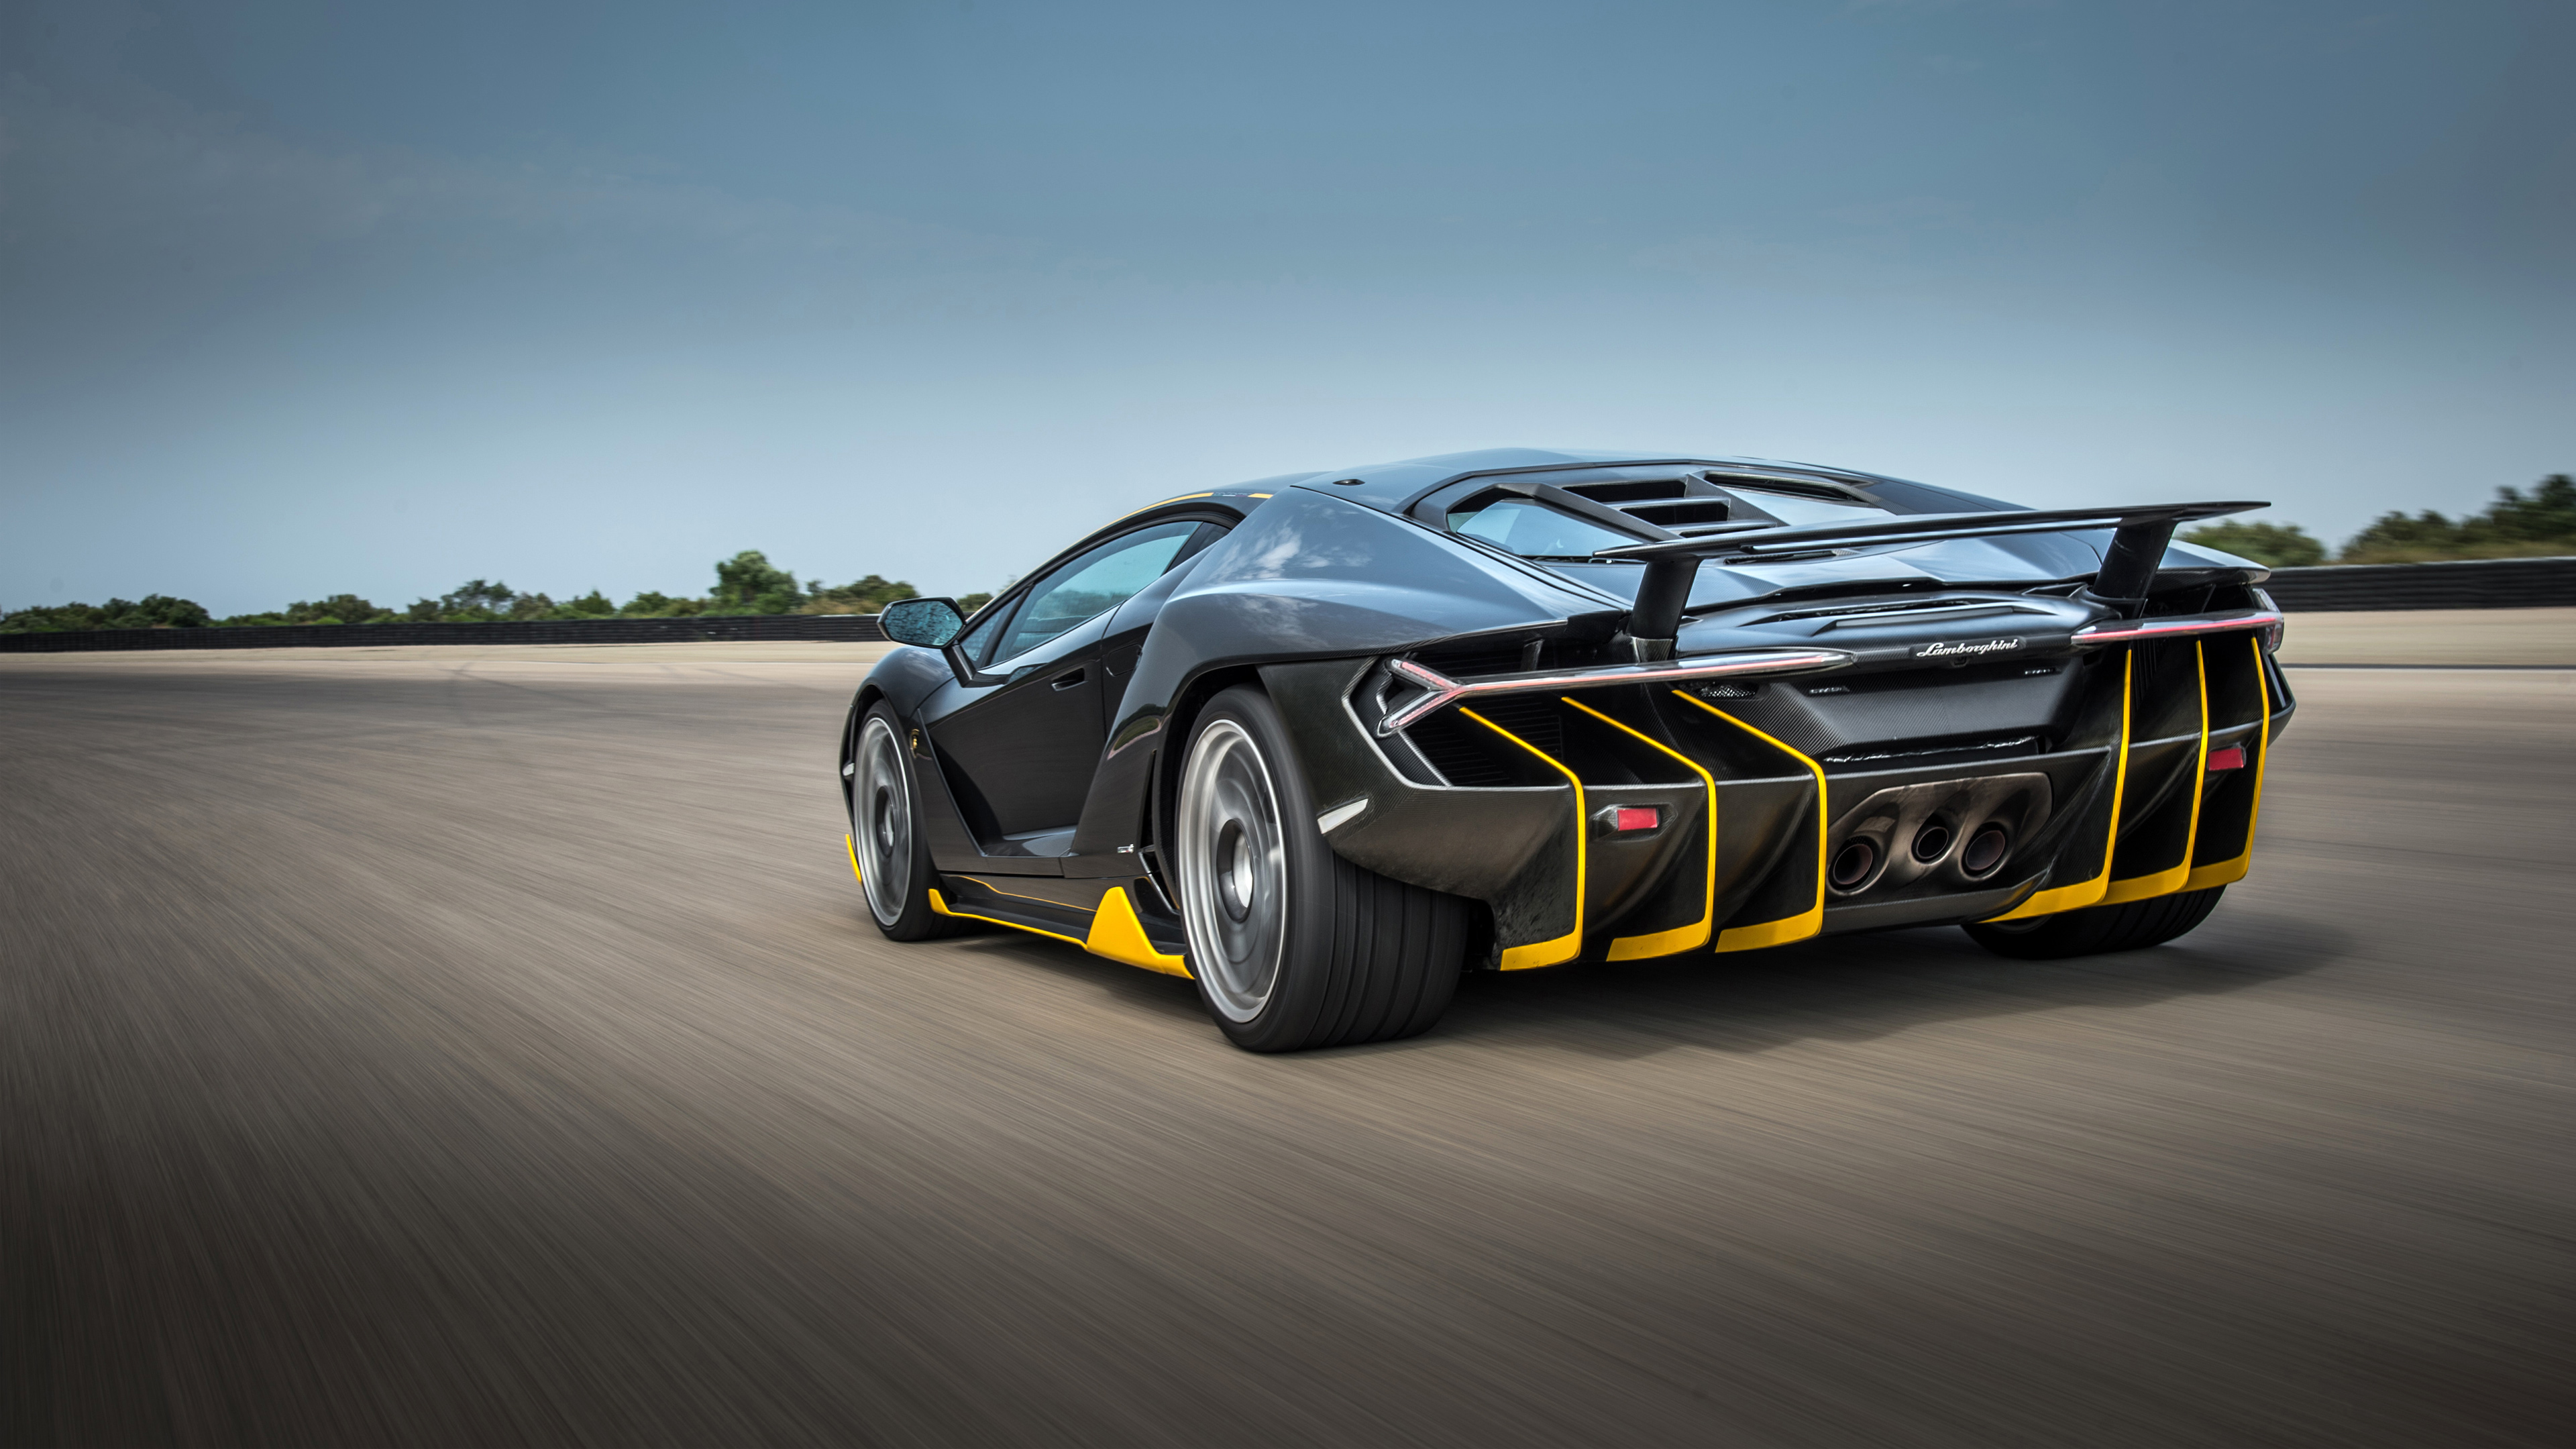 Lamborghini Centenario Coupe Rear 4k Wallpaper Hd Car